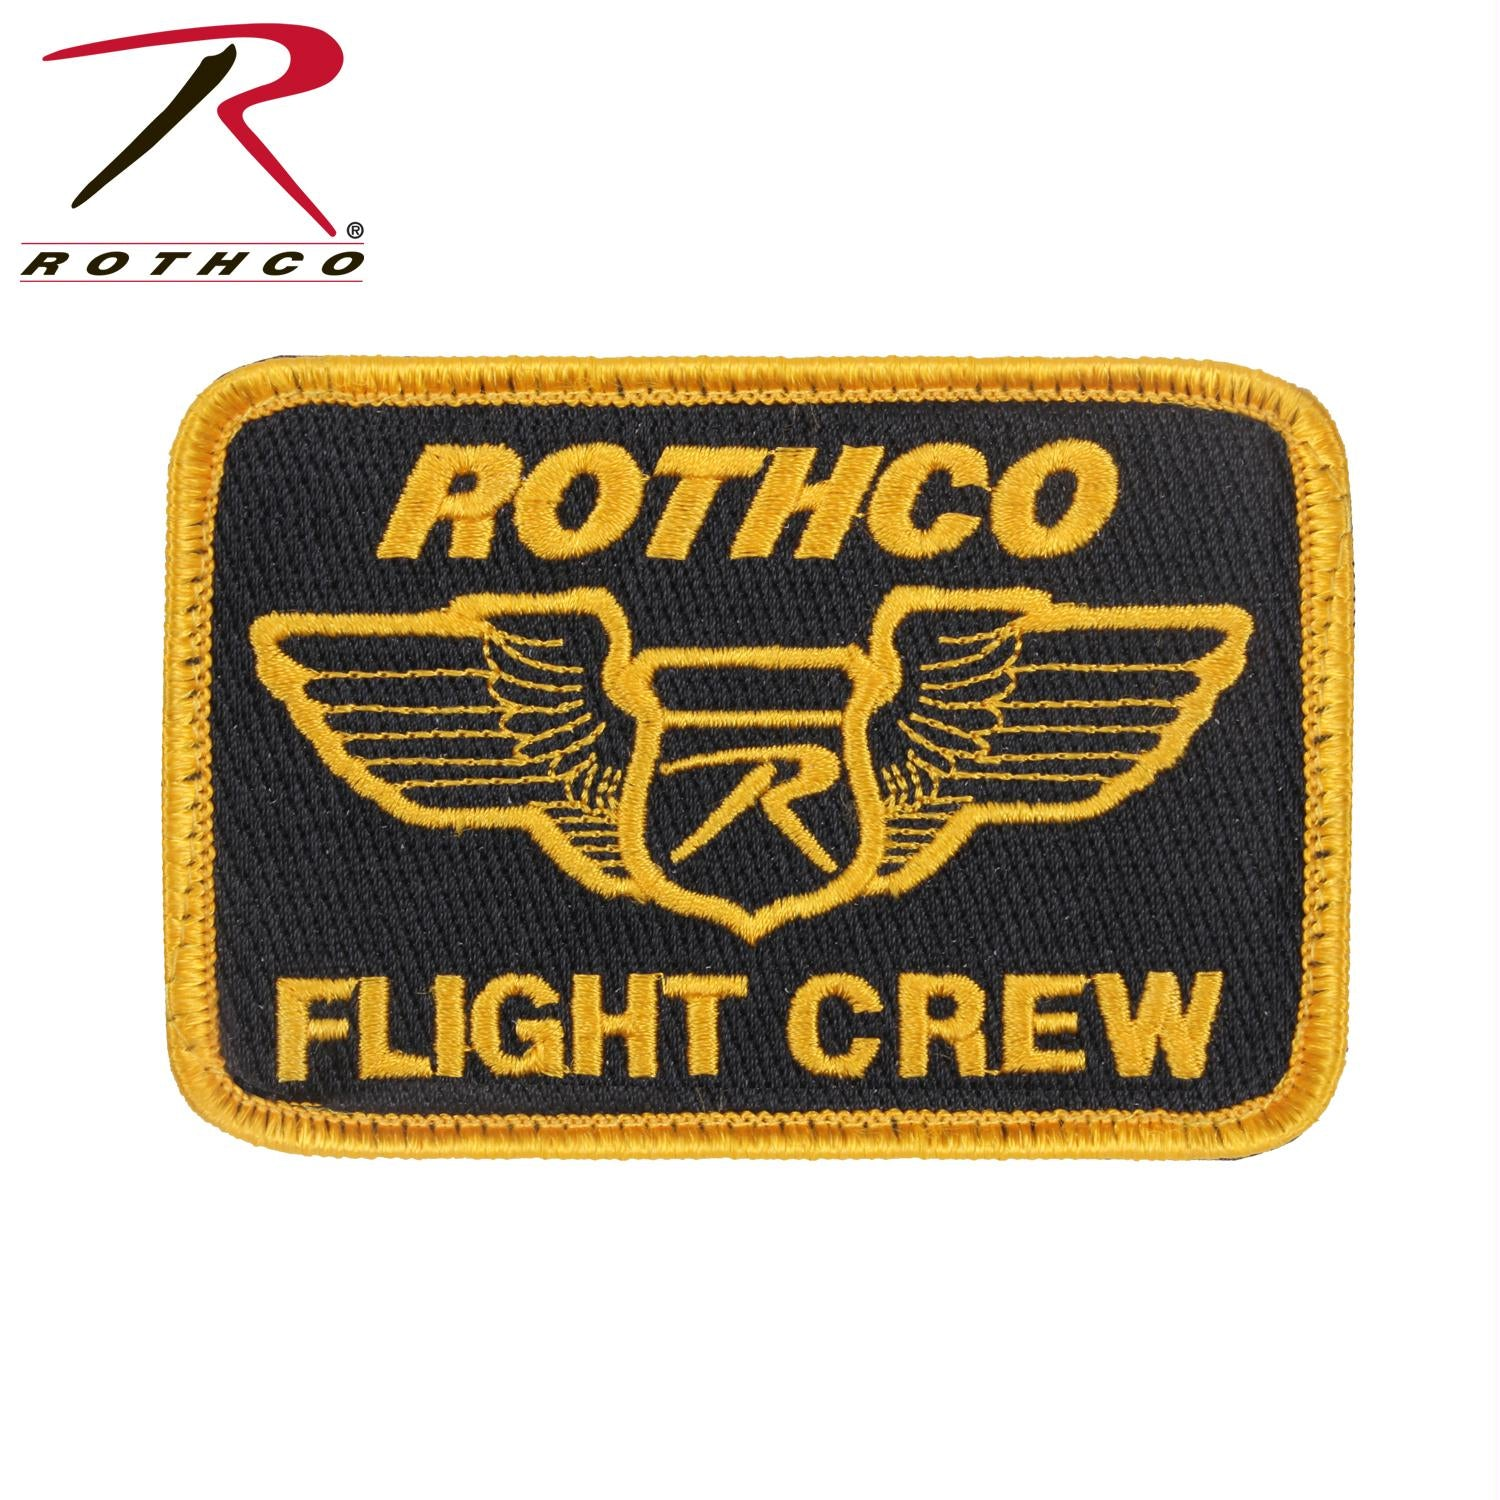 Rothco Flight Crew Morale Patch